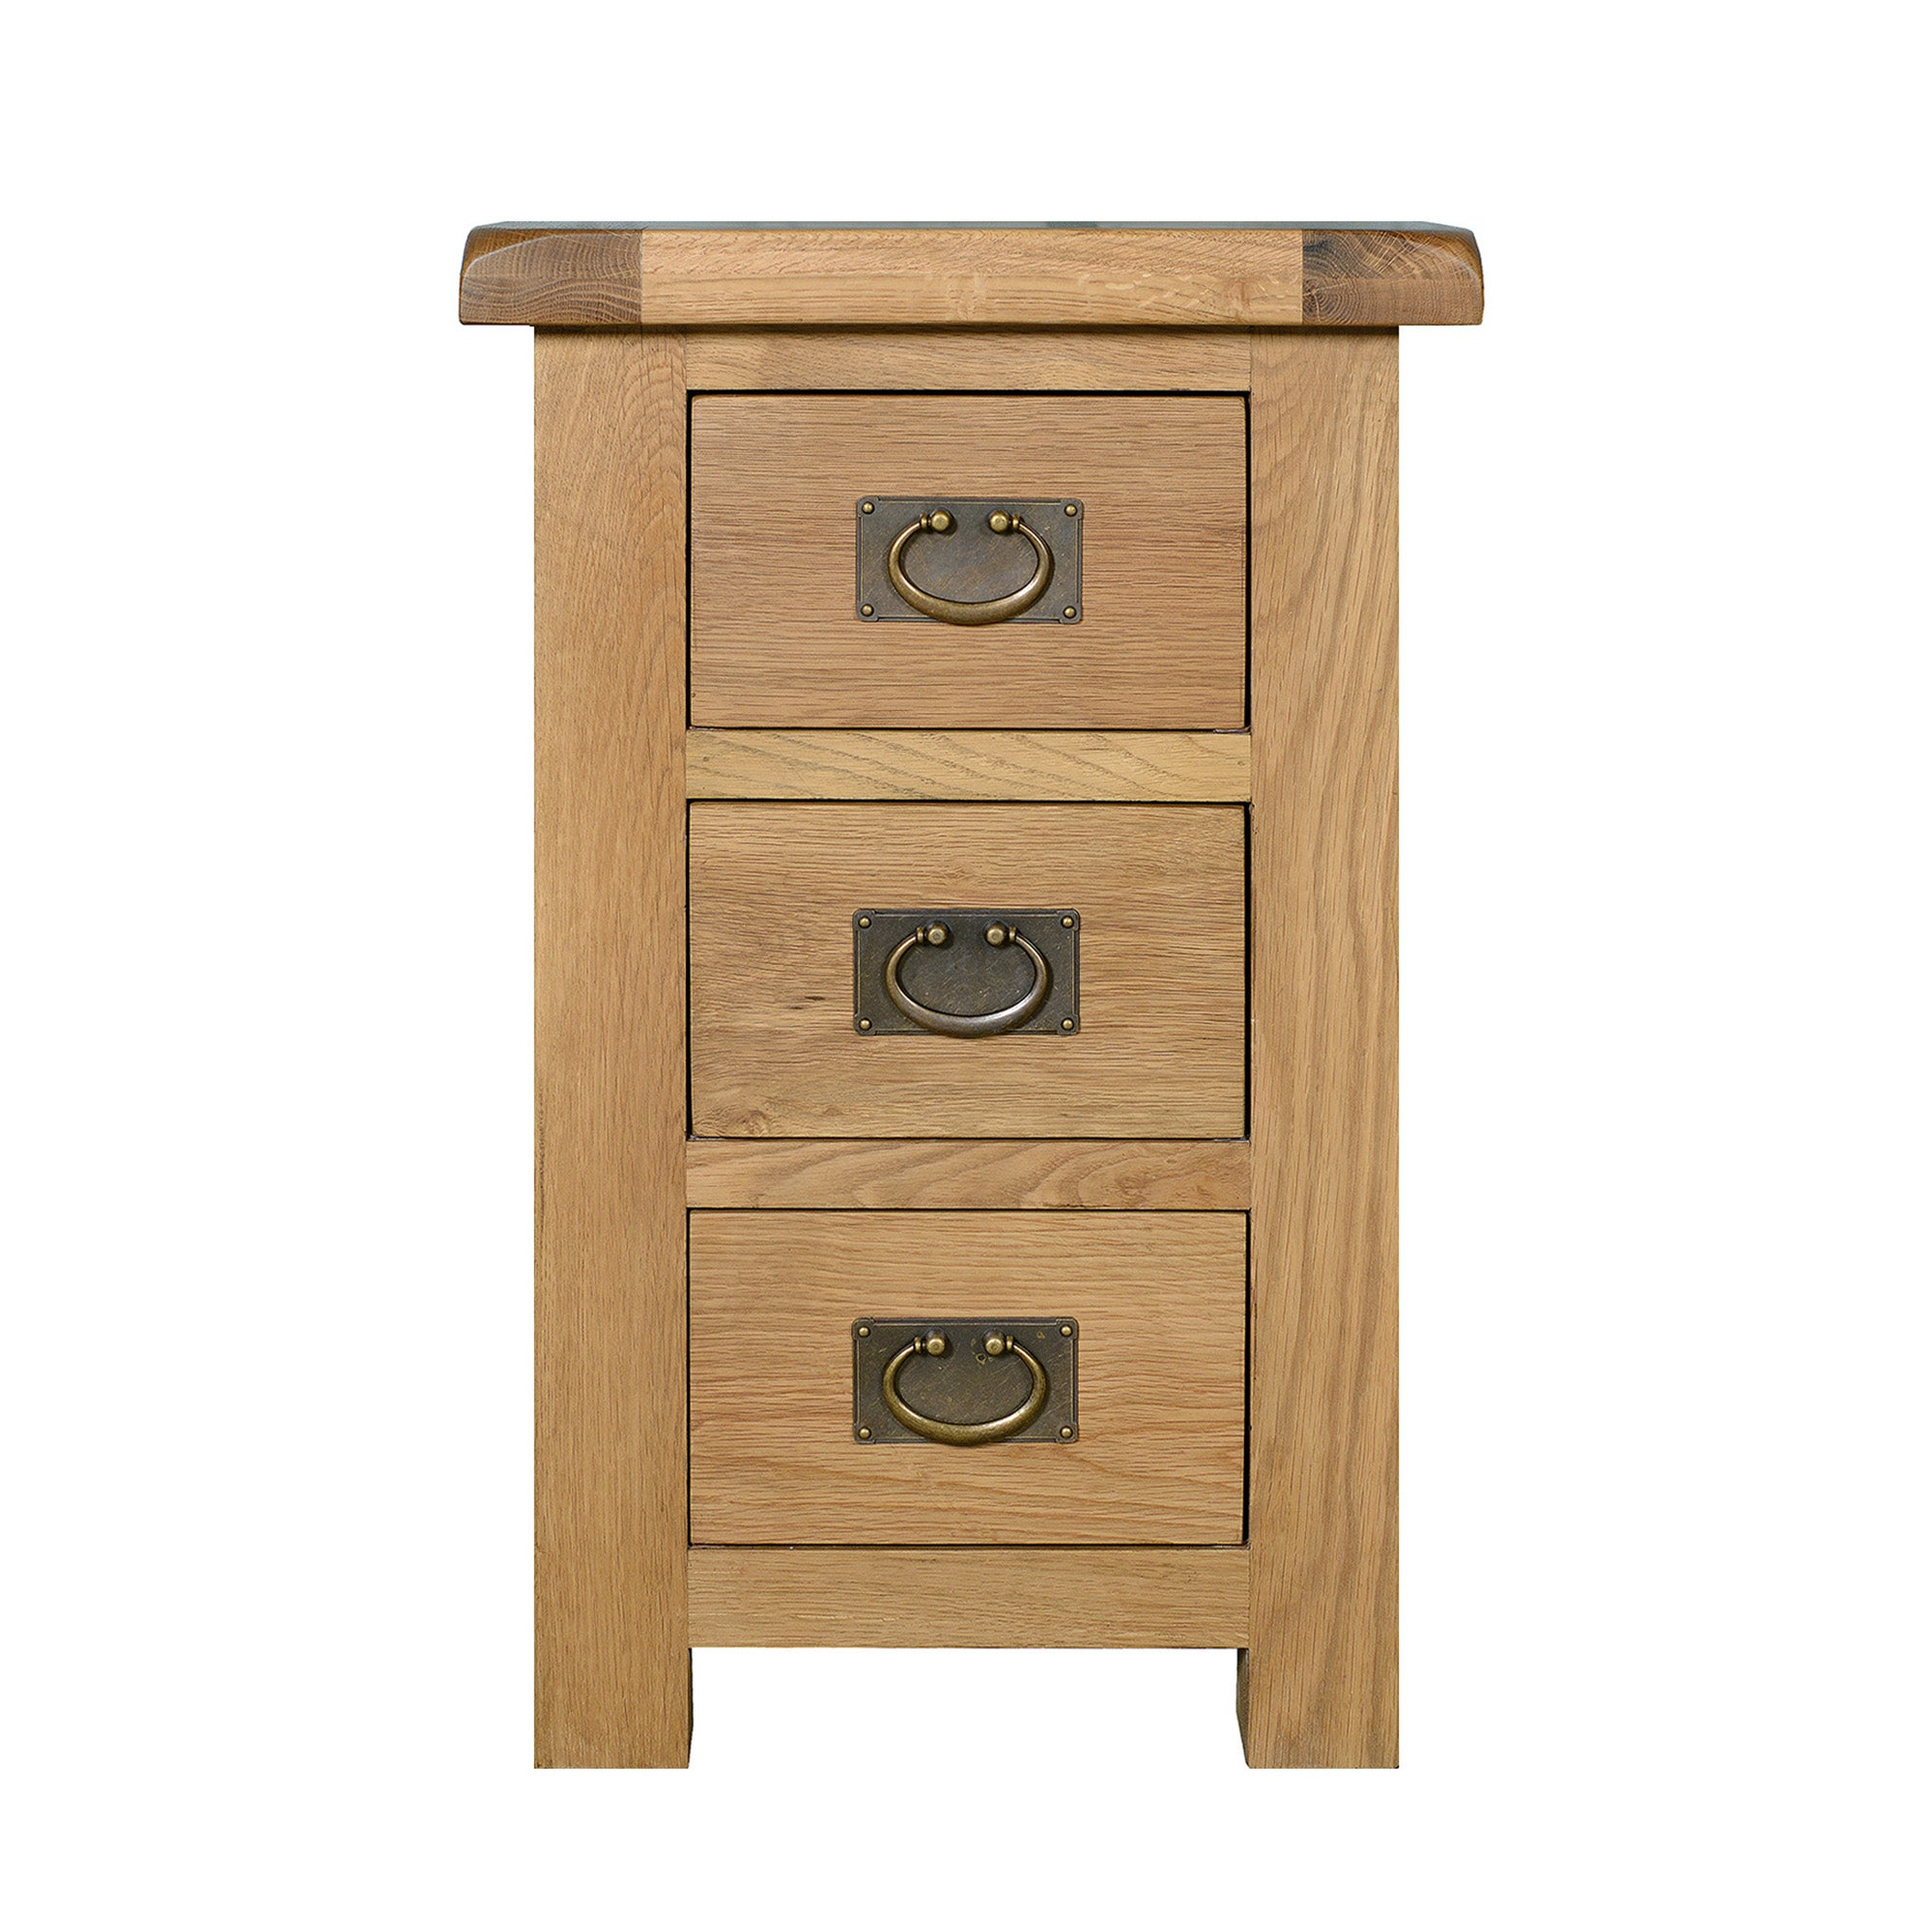 Aylesbury Oak Bedroom Furniture Collection